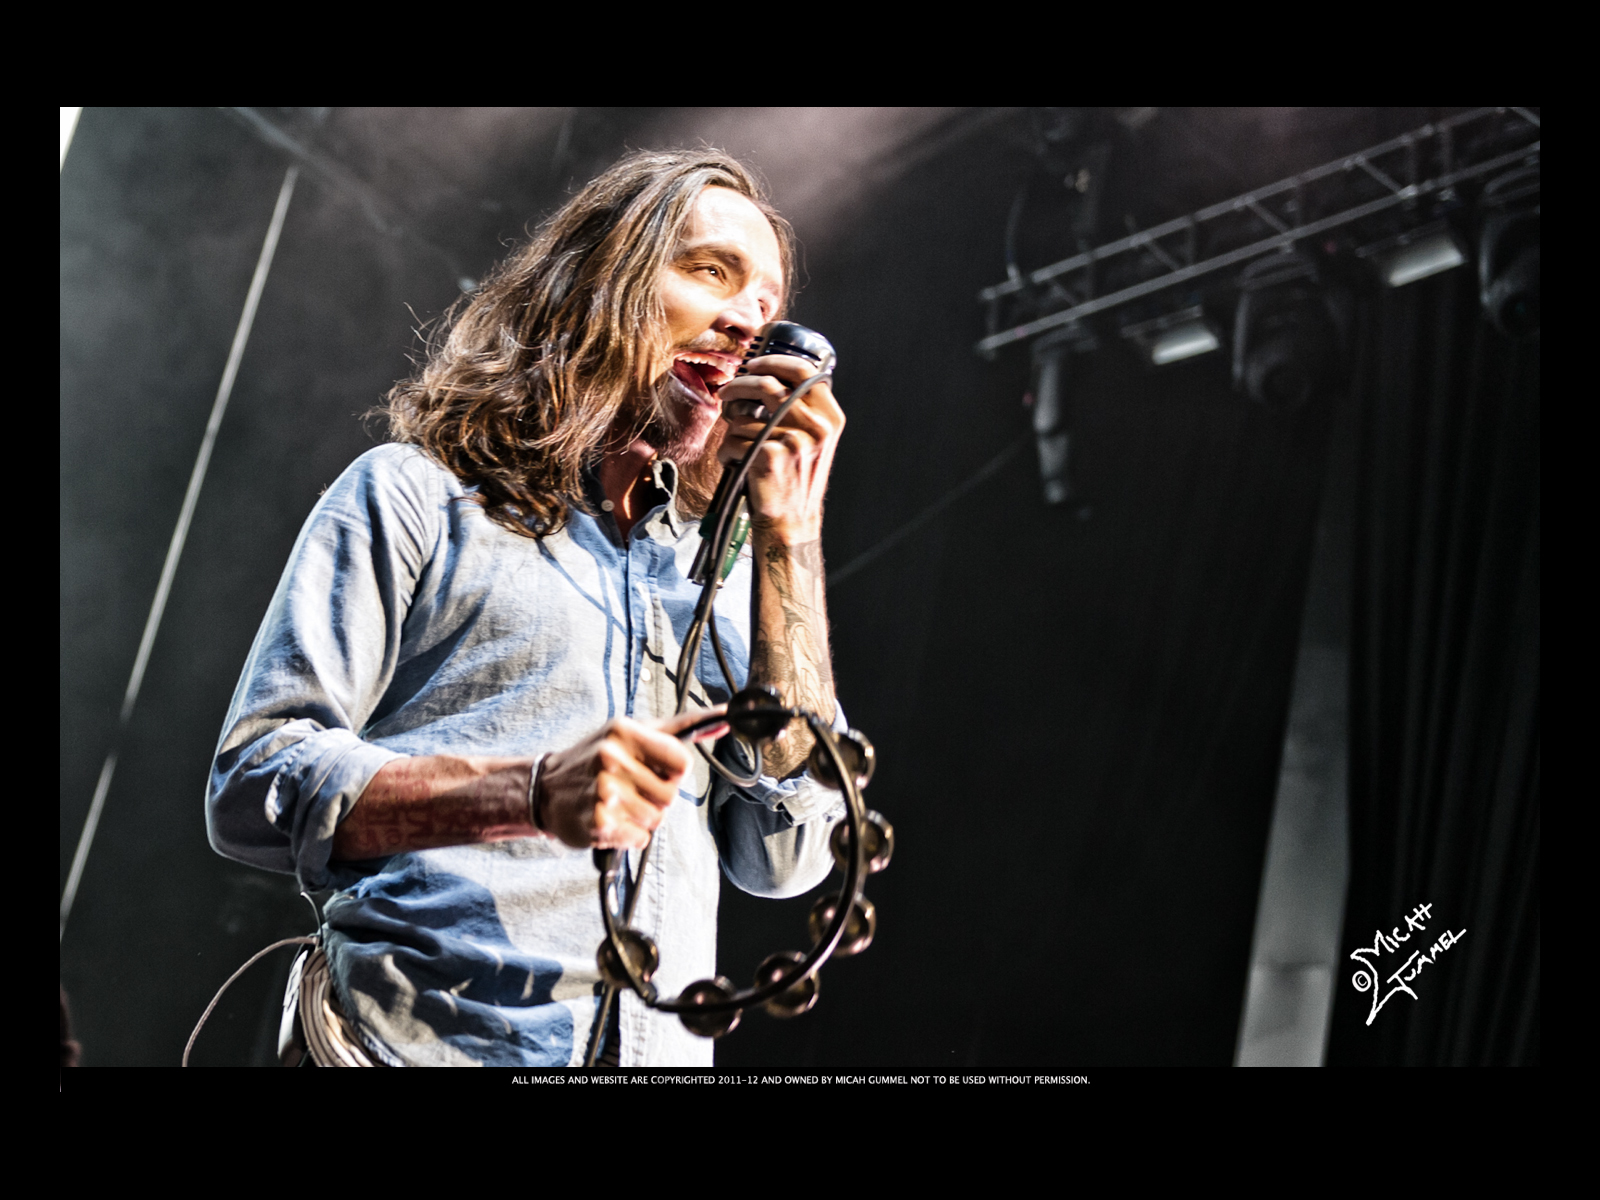 Incubus Songs List Delightful honda civic tour 2012 rocked the comcast center - mansfield ma